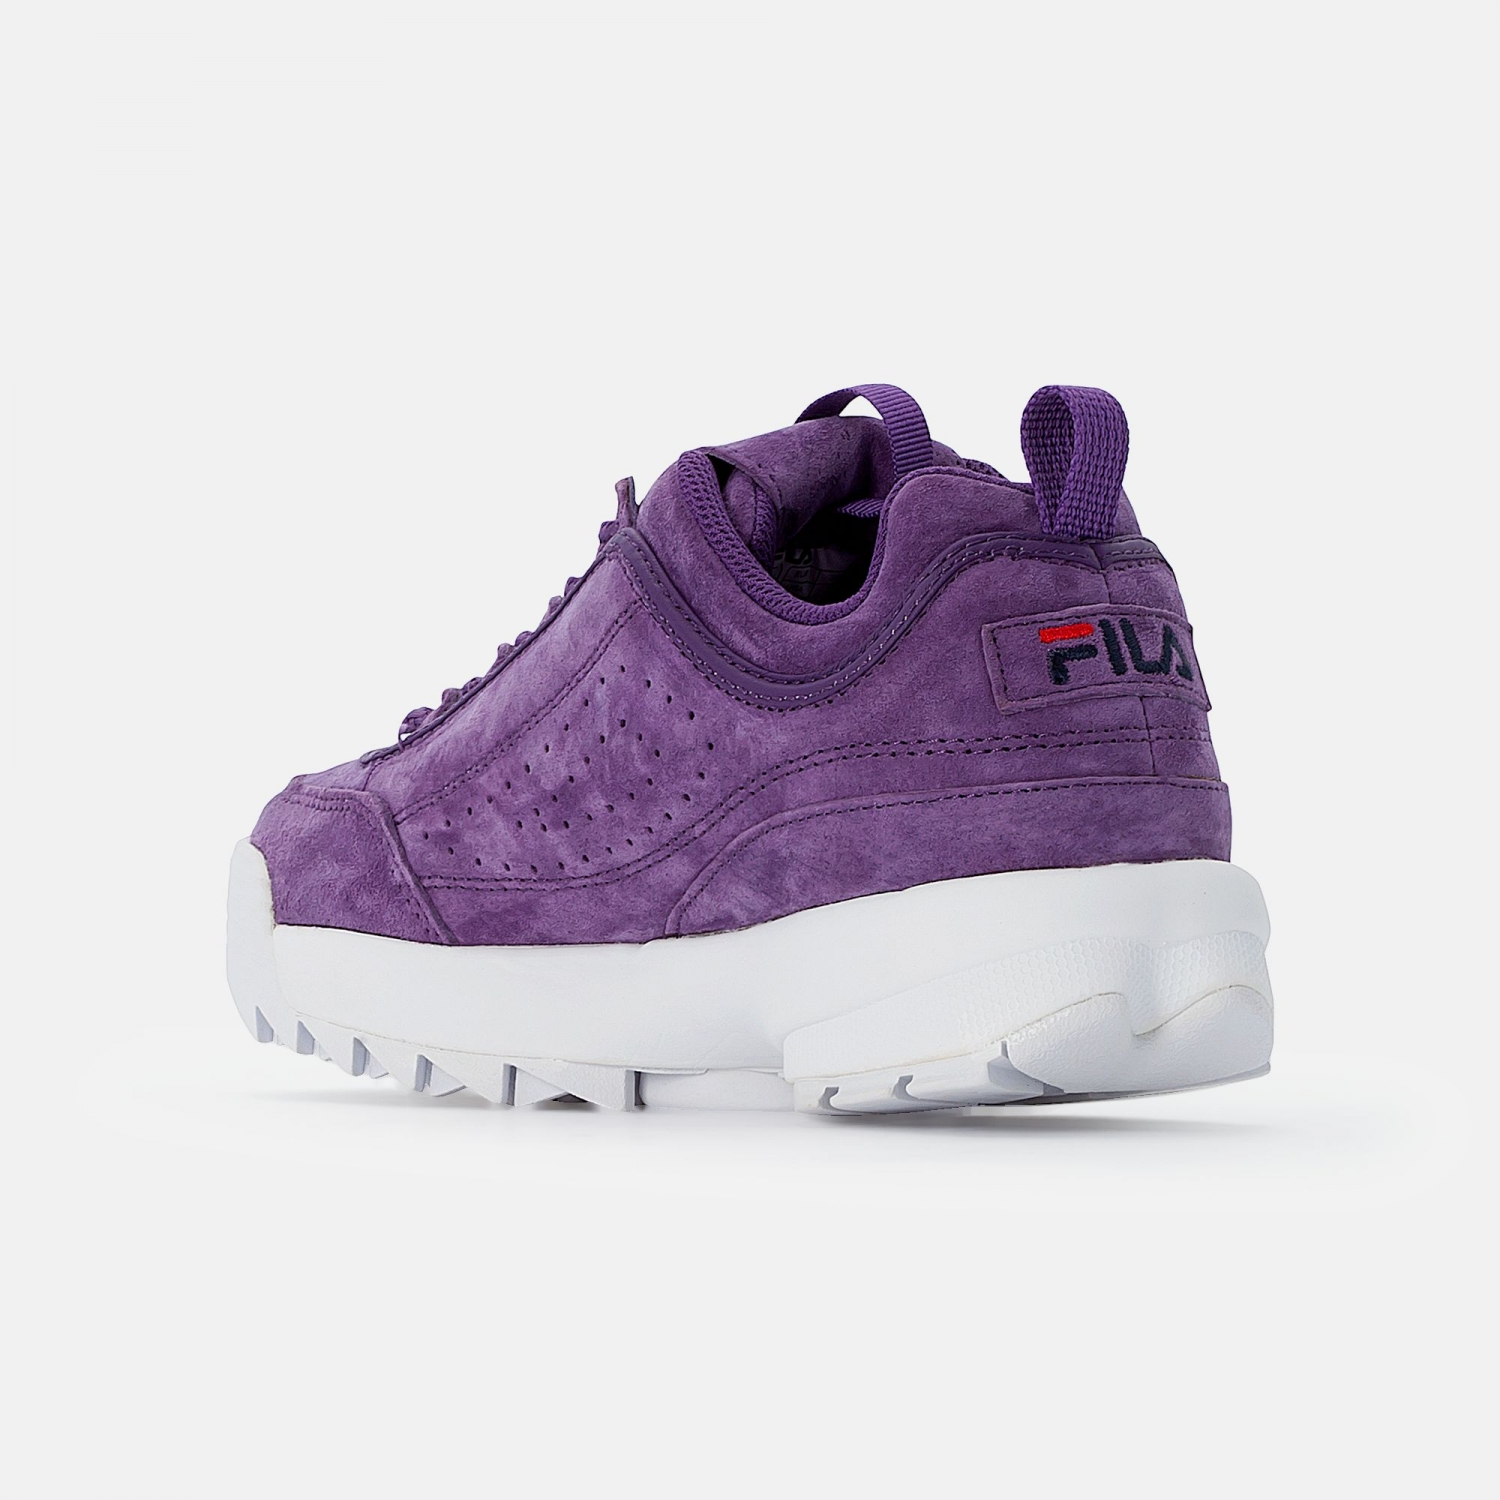 Fila Disruptor S Low Wmn tillandsia-purple Bild 3